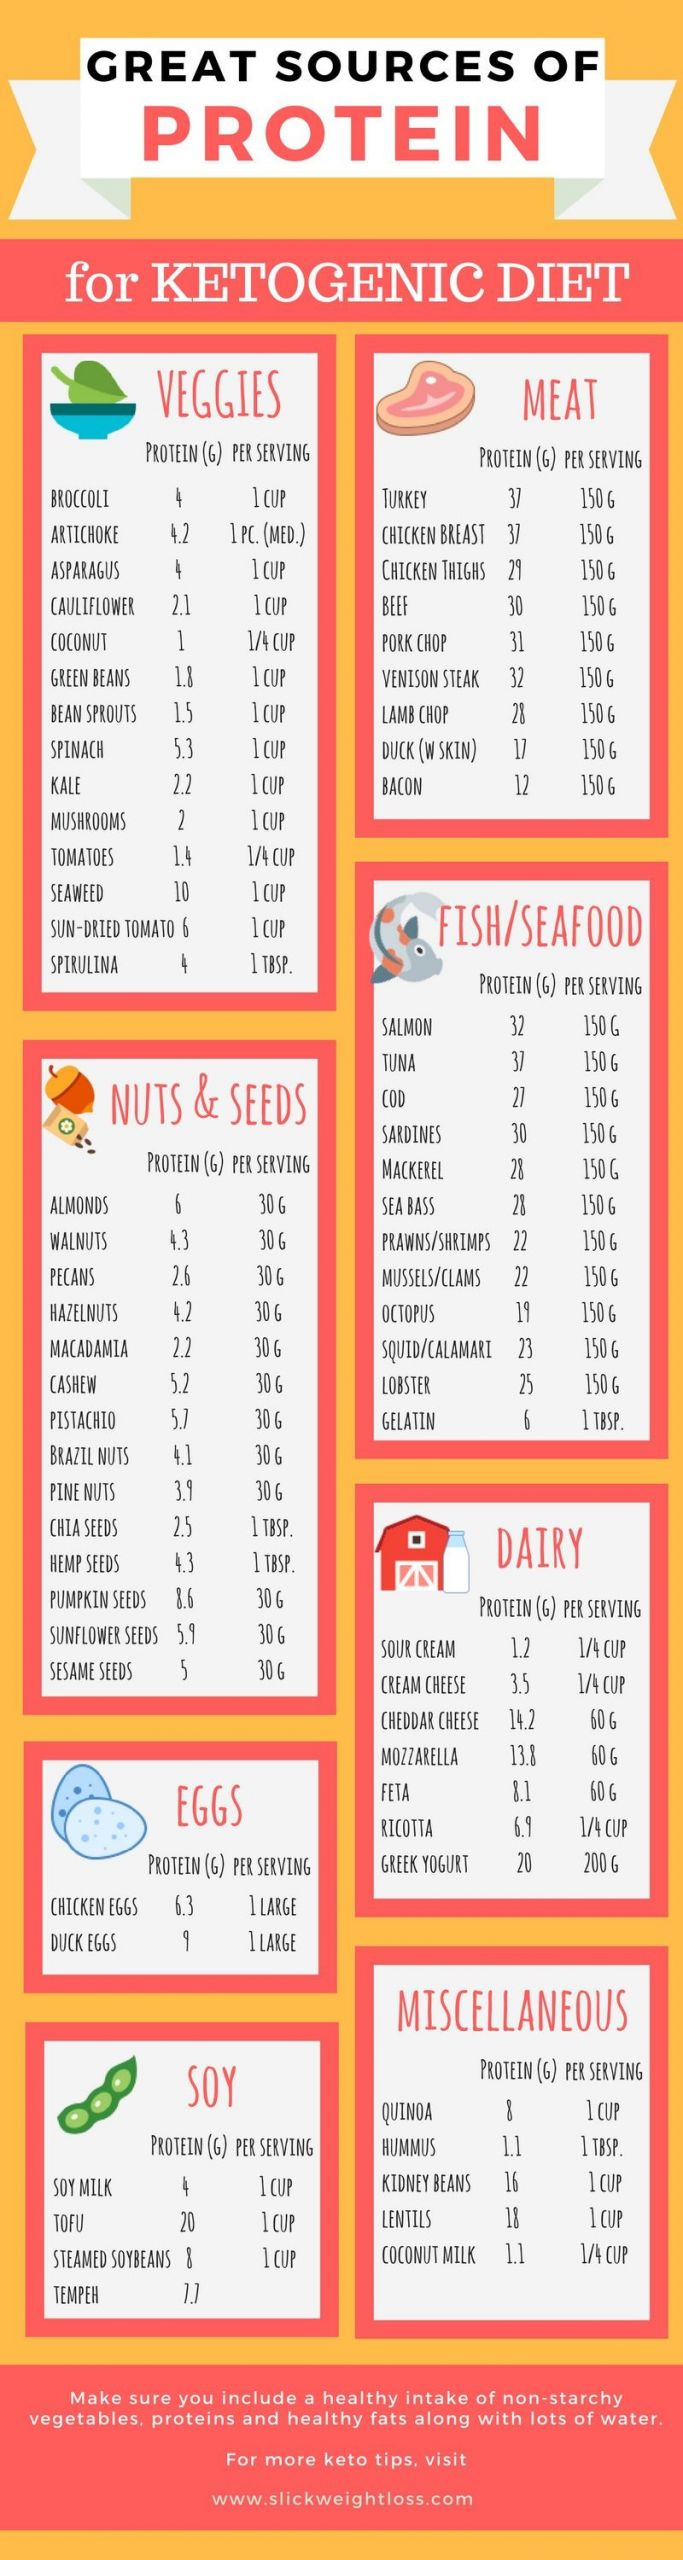 Keto Diet Vegan Plan  Best Protein Sources Vegan and Dairy Free for a